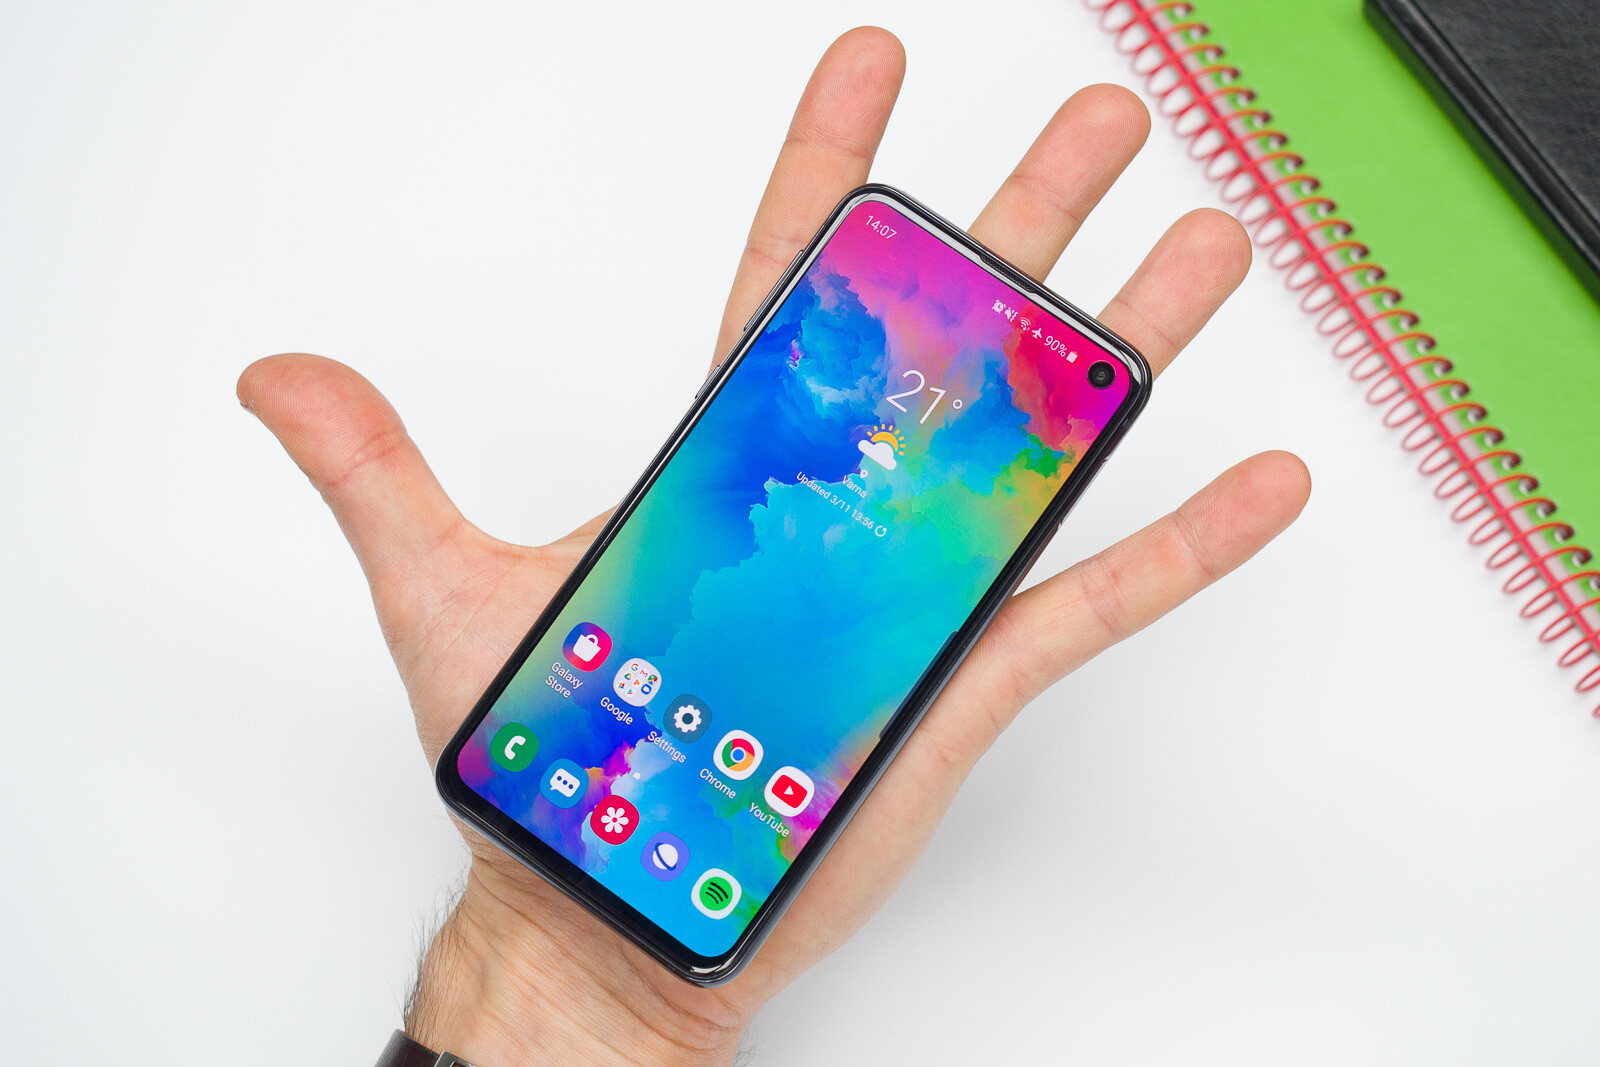 Best smartphone you can buy right now in 2019 - PhoneArena